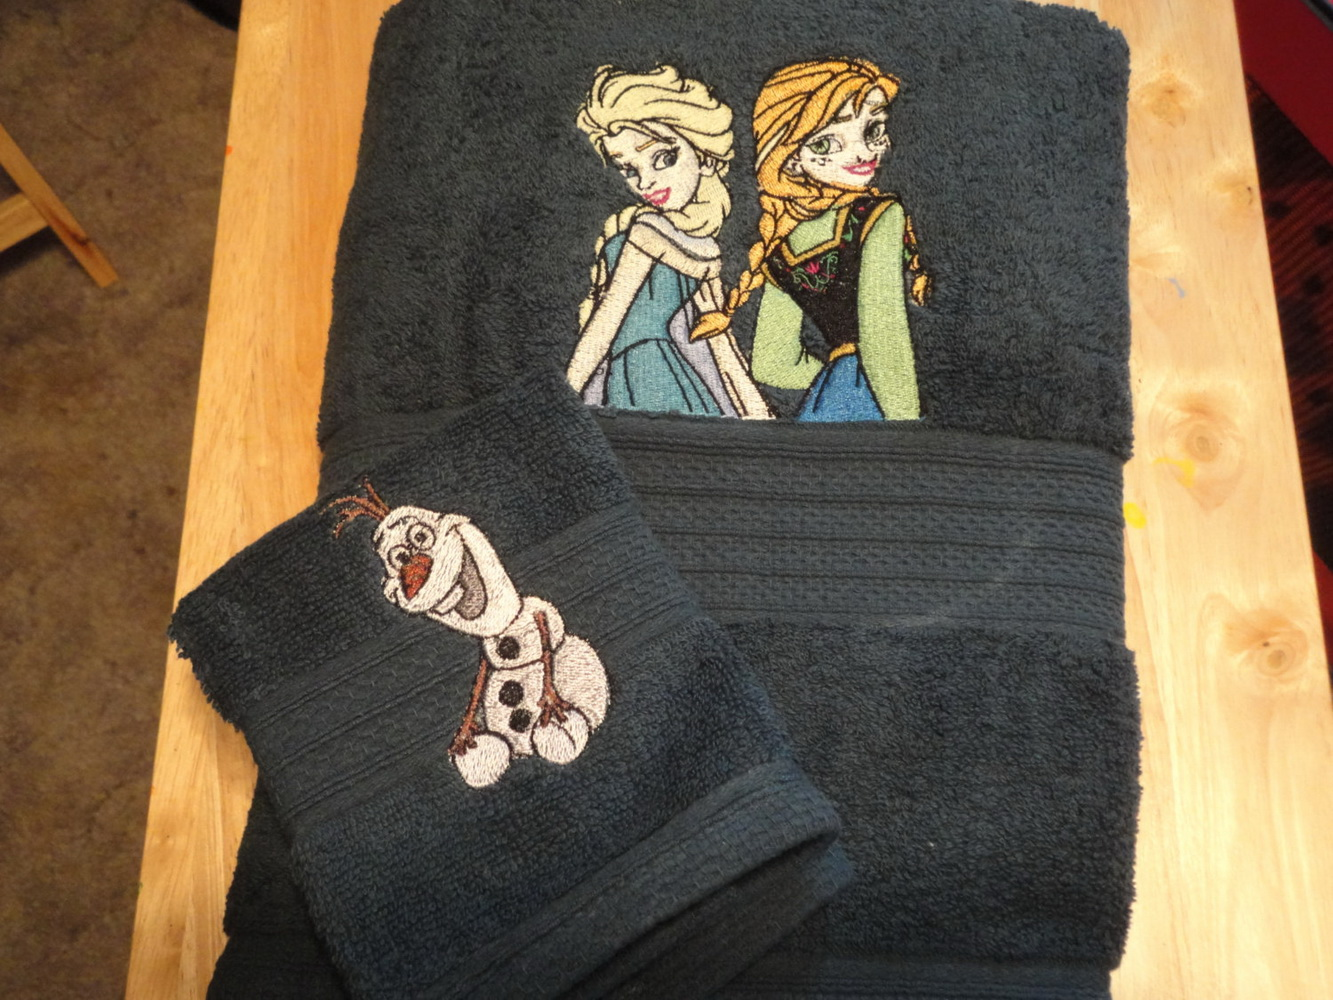 Anna, Elsa and Olaf embroidered on black towels